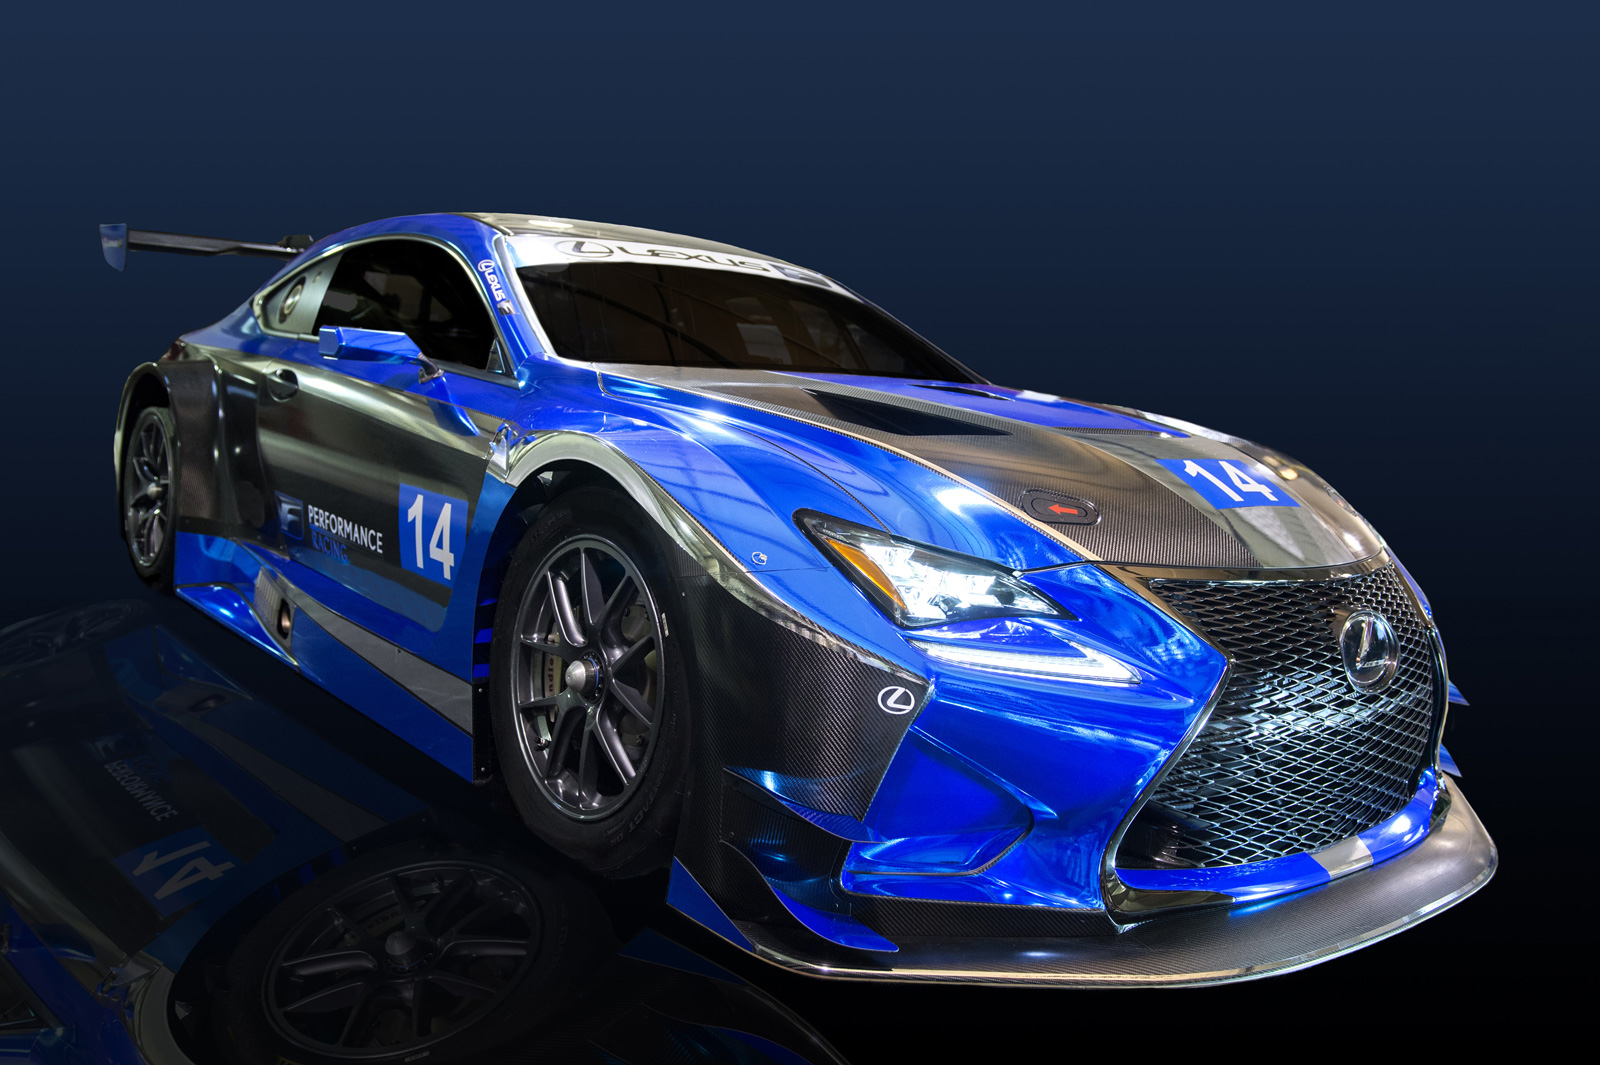 https://www.autoguide.com/blog/wp-content/gallery/lexus-rc-f-gt3-race-program/lexus-rc-f-gt3-race-car-01.jpg